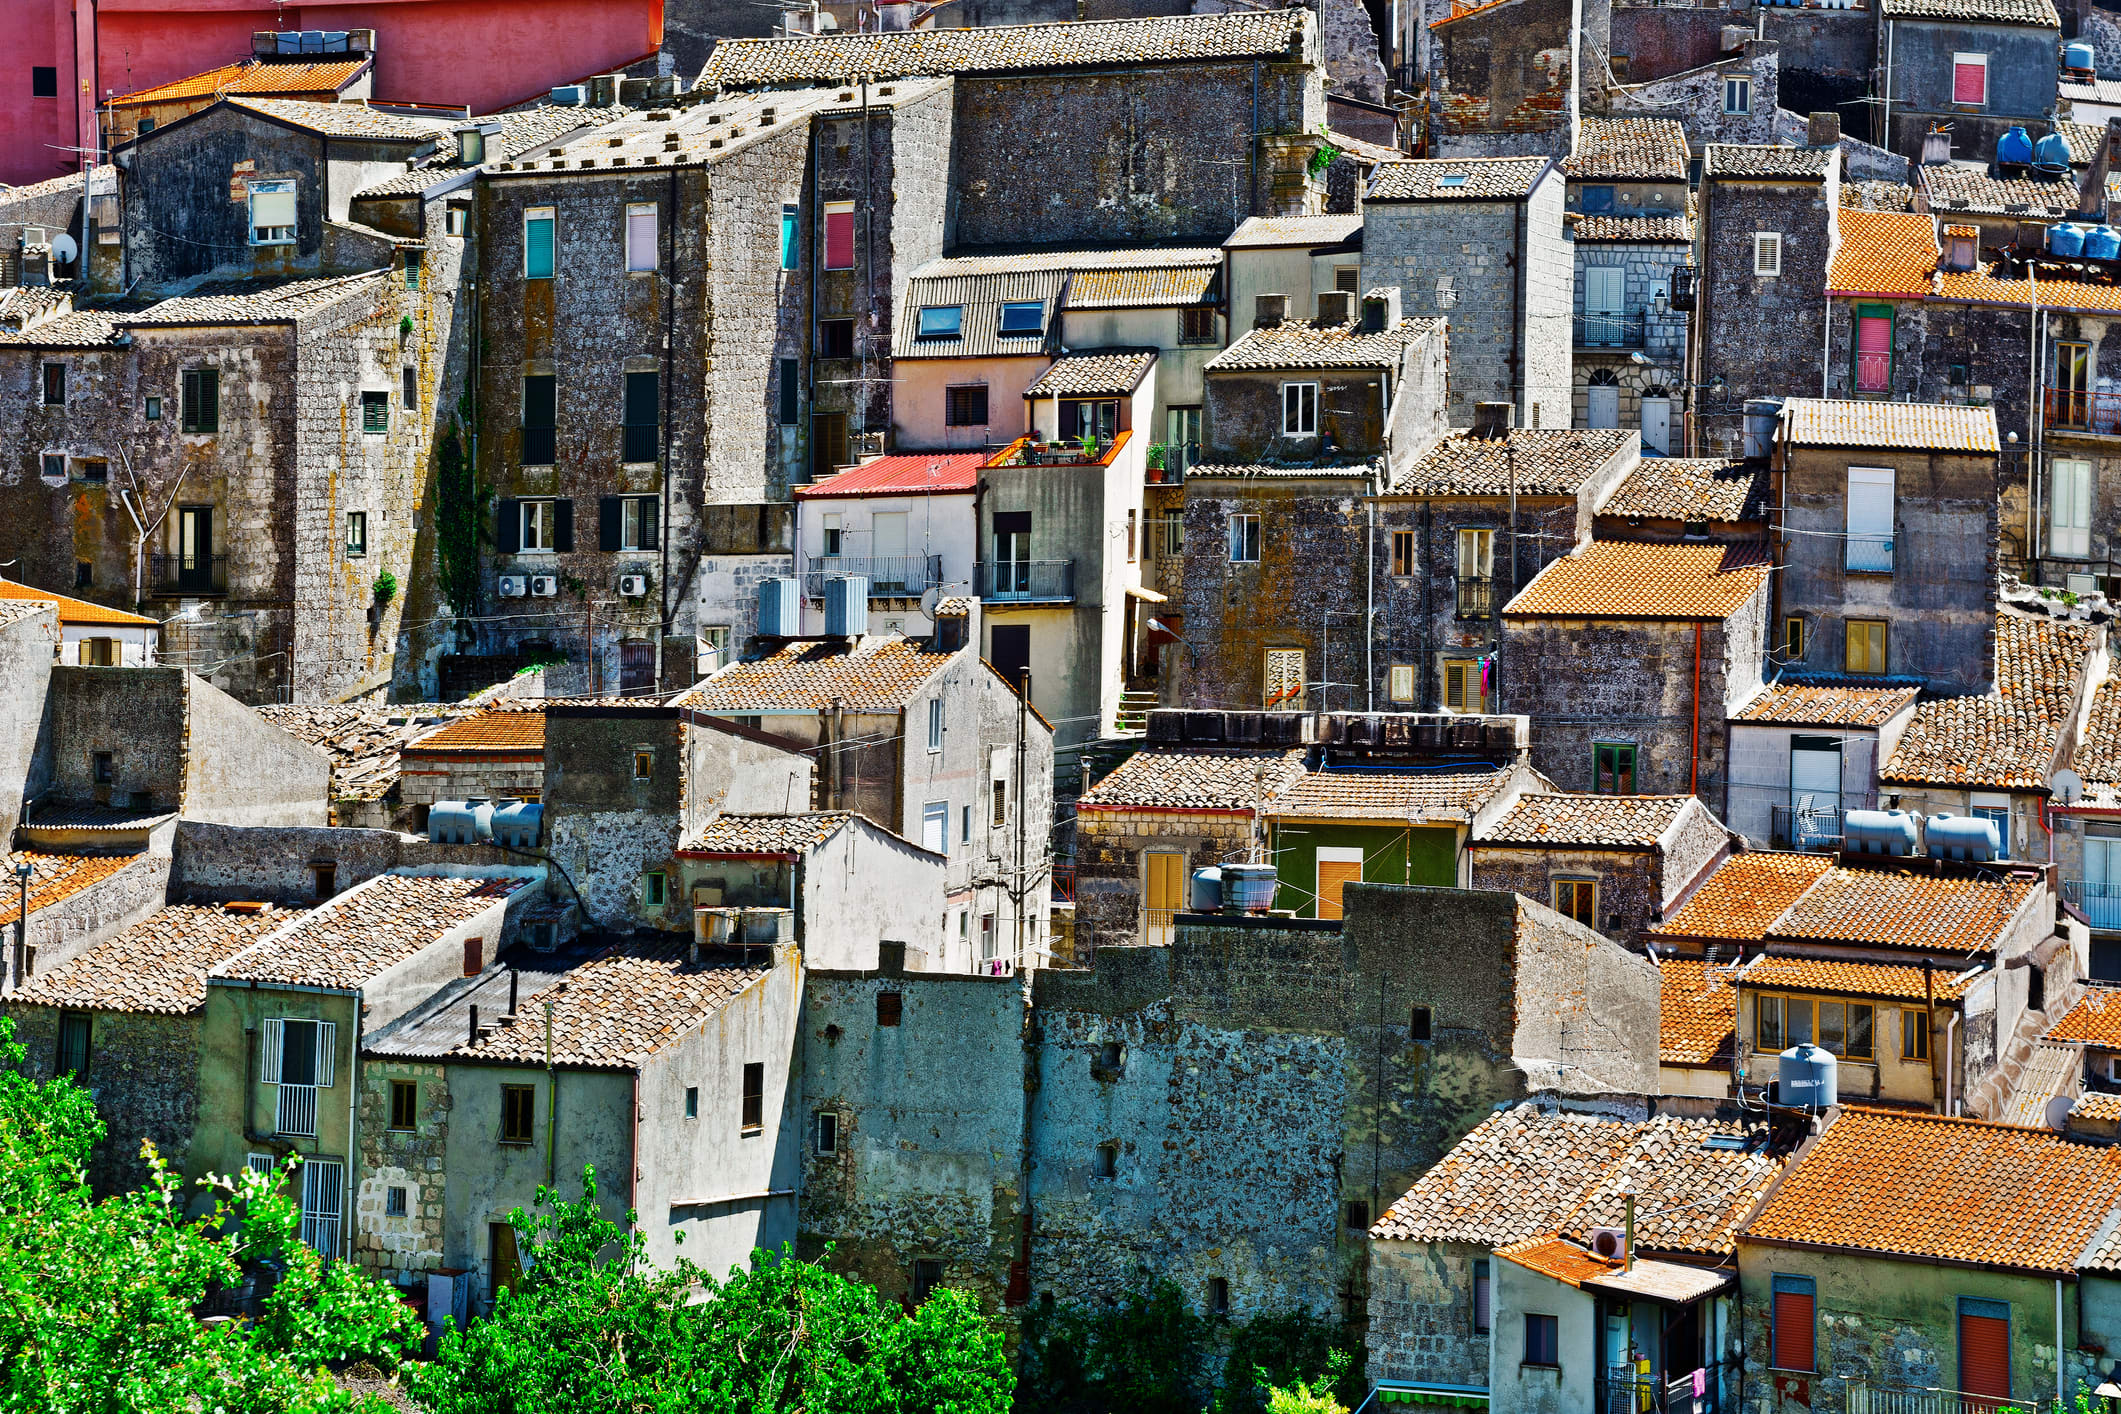 Town Of Mussomeli In Sicily Italy Selling Houses For 1 Dollar